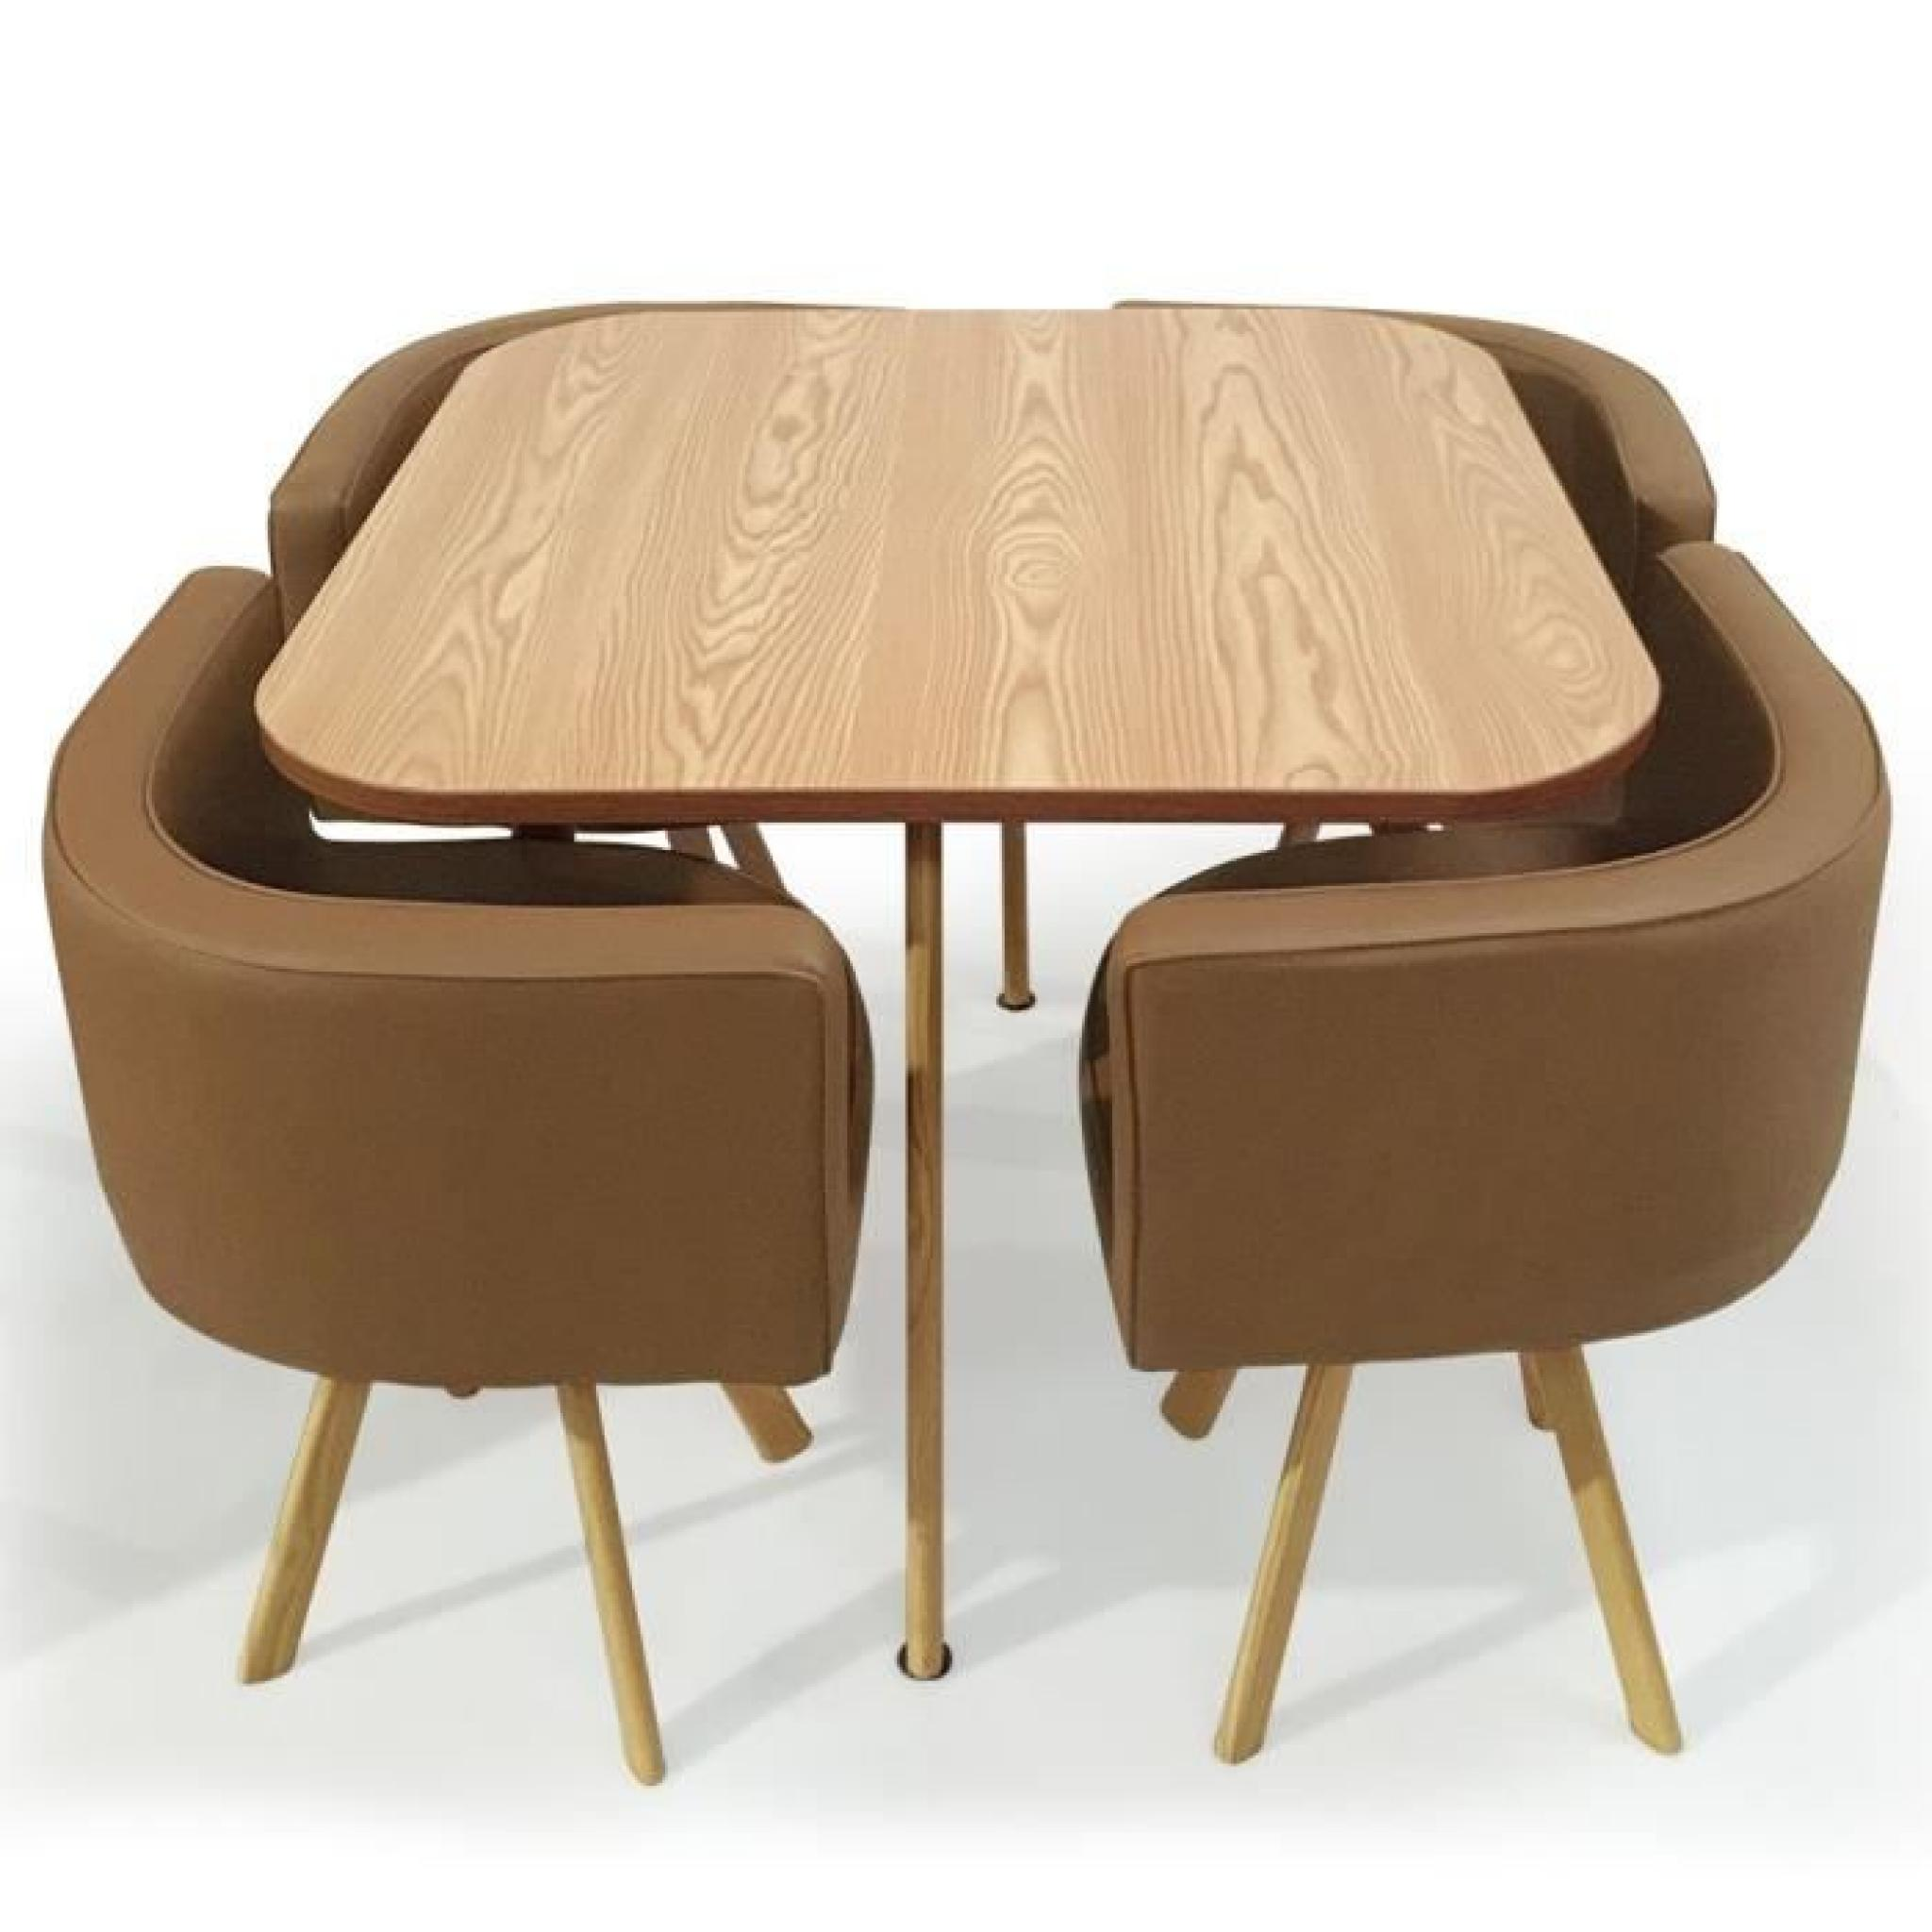 Table et chaises encastrables scandinaves oslo taupe - Table a manger chaise ...